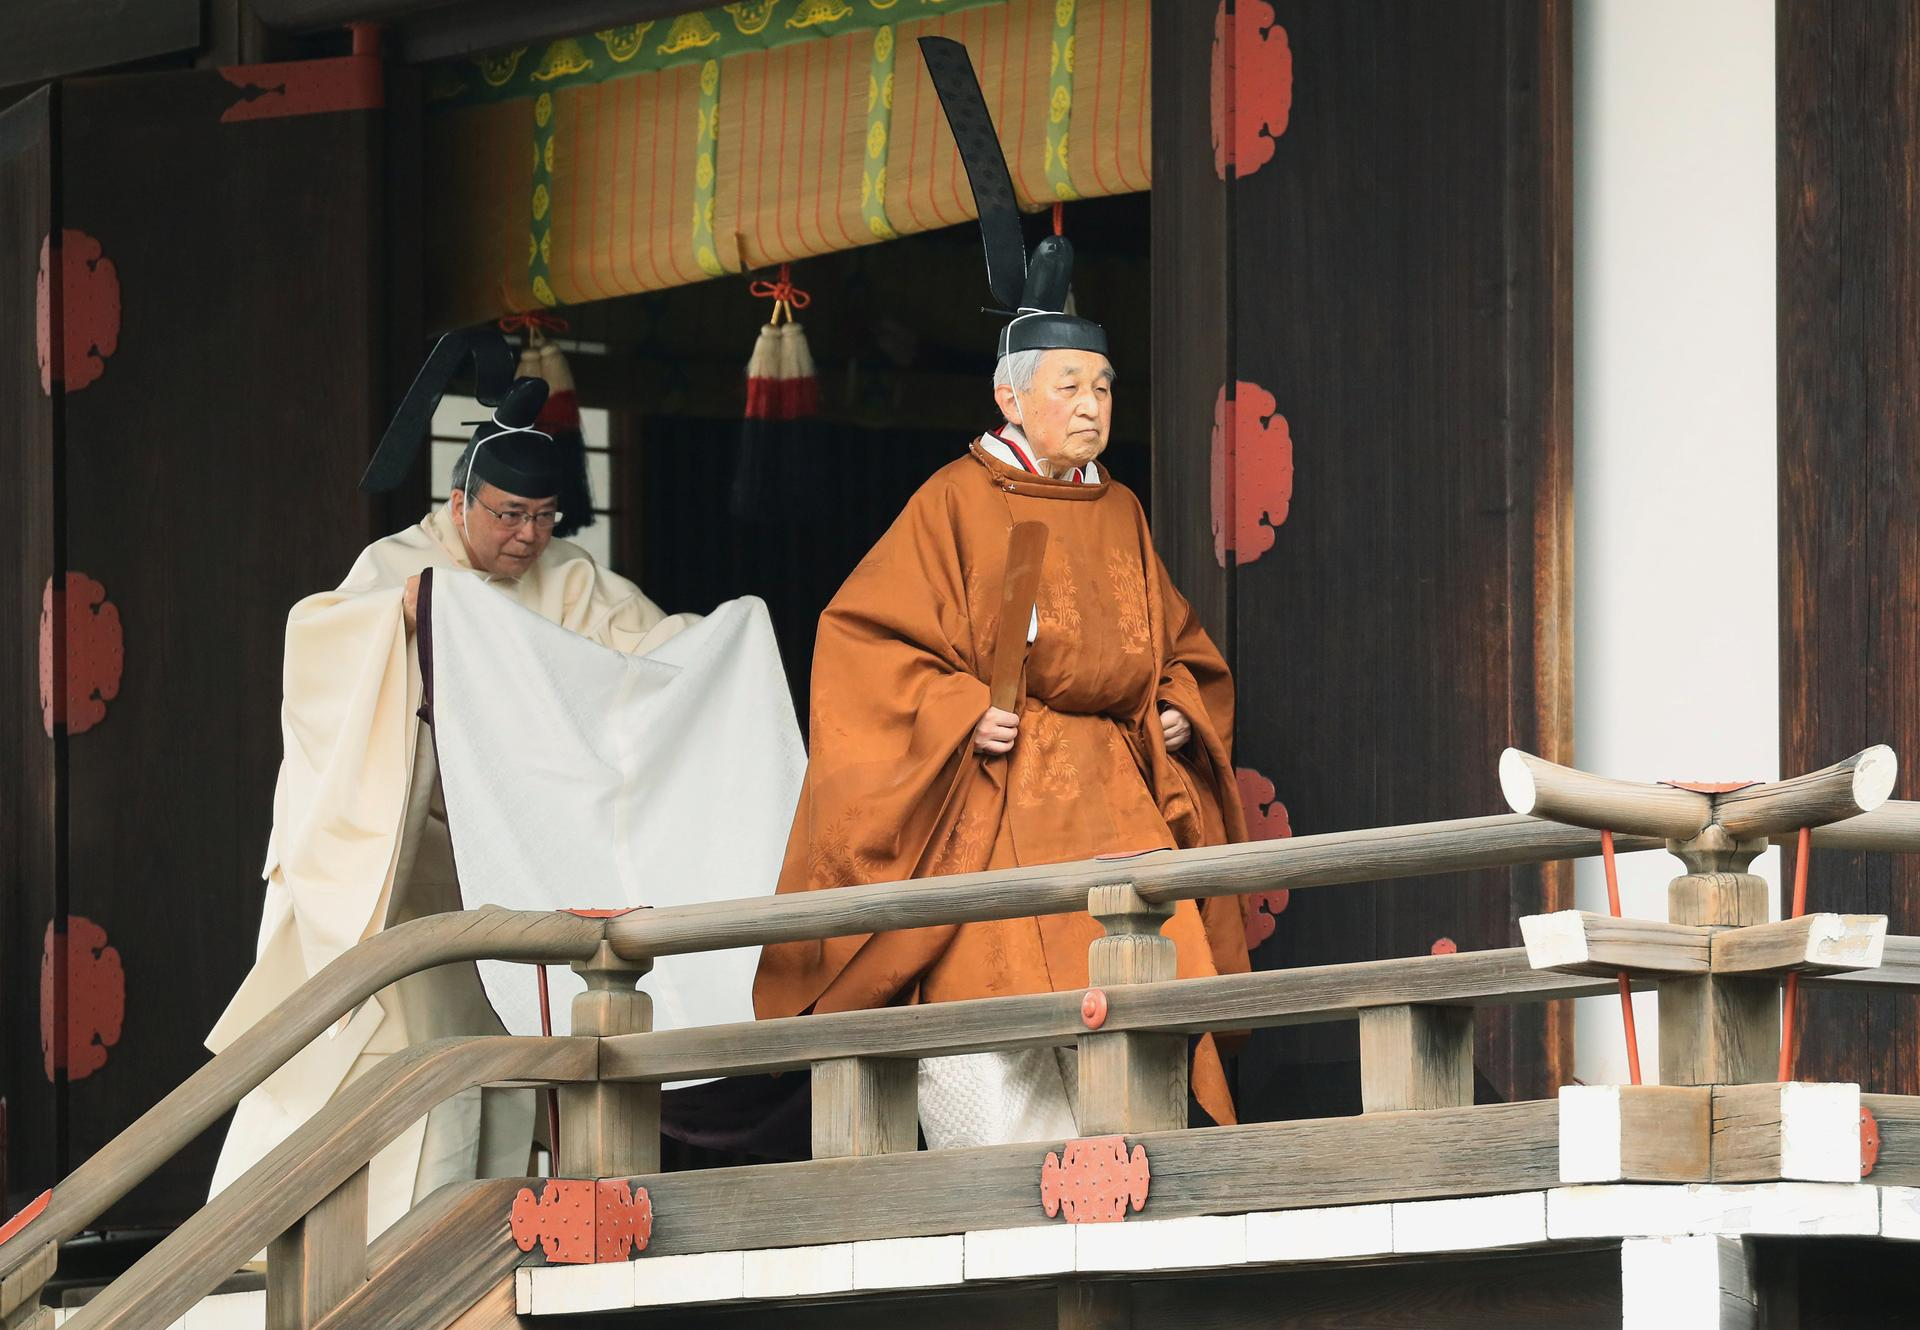 Emperor Akihito prays ahead of Japan's first abdication in two centuries